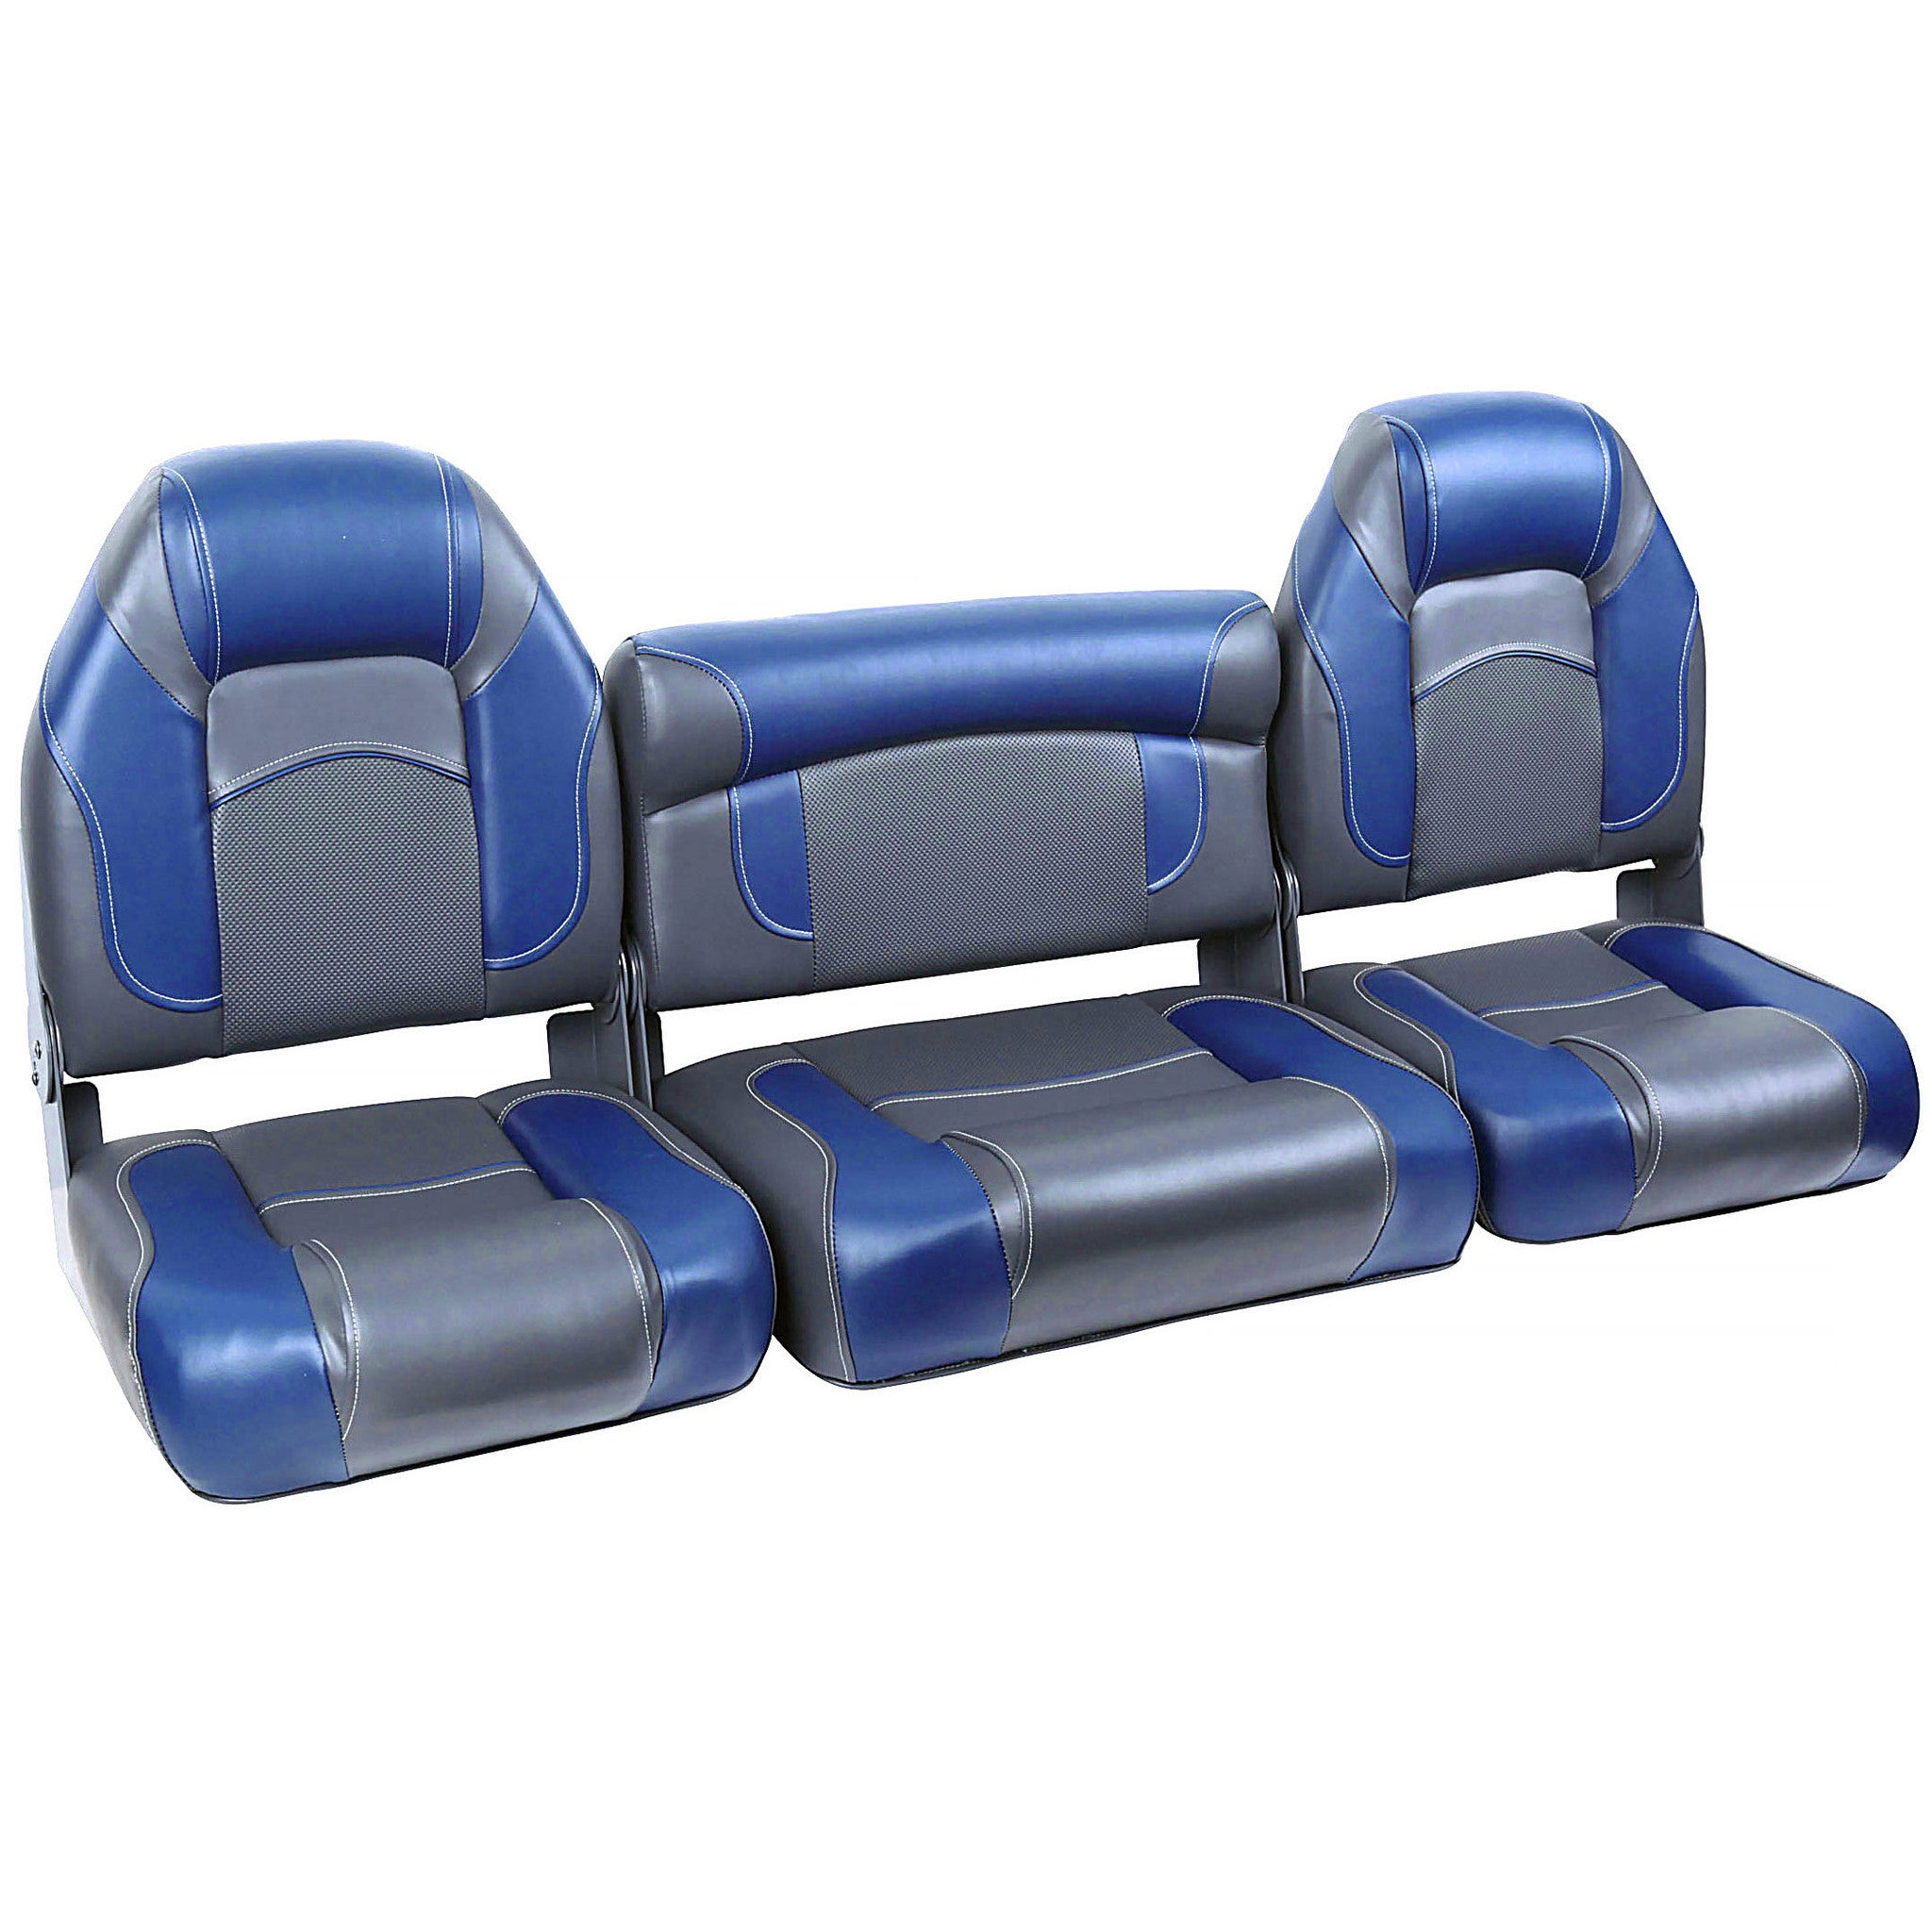 Awe Inspiring 58 Fold Down Bench Seats Boat Seats Andrewgaddart Wooden Chair Designs For Living Room Andrewgaddartcom